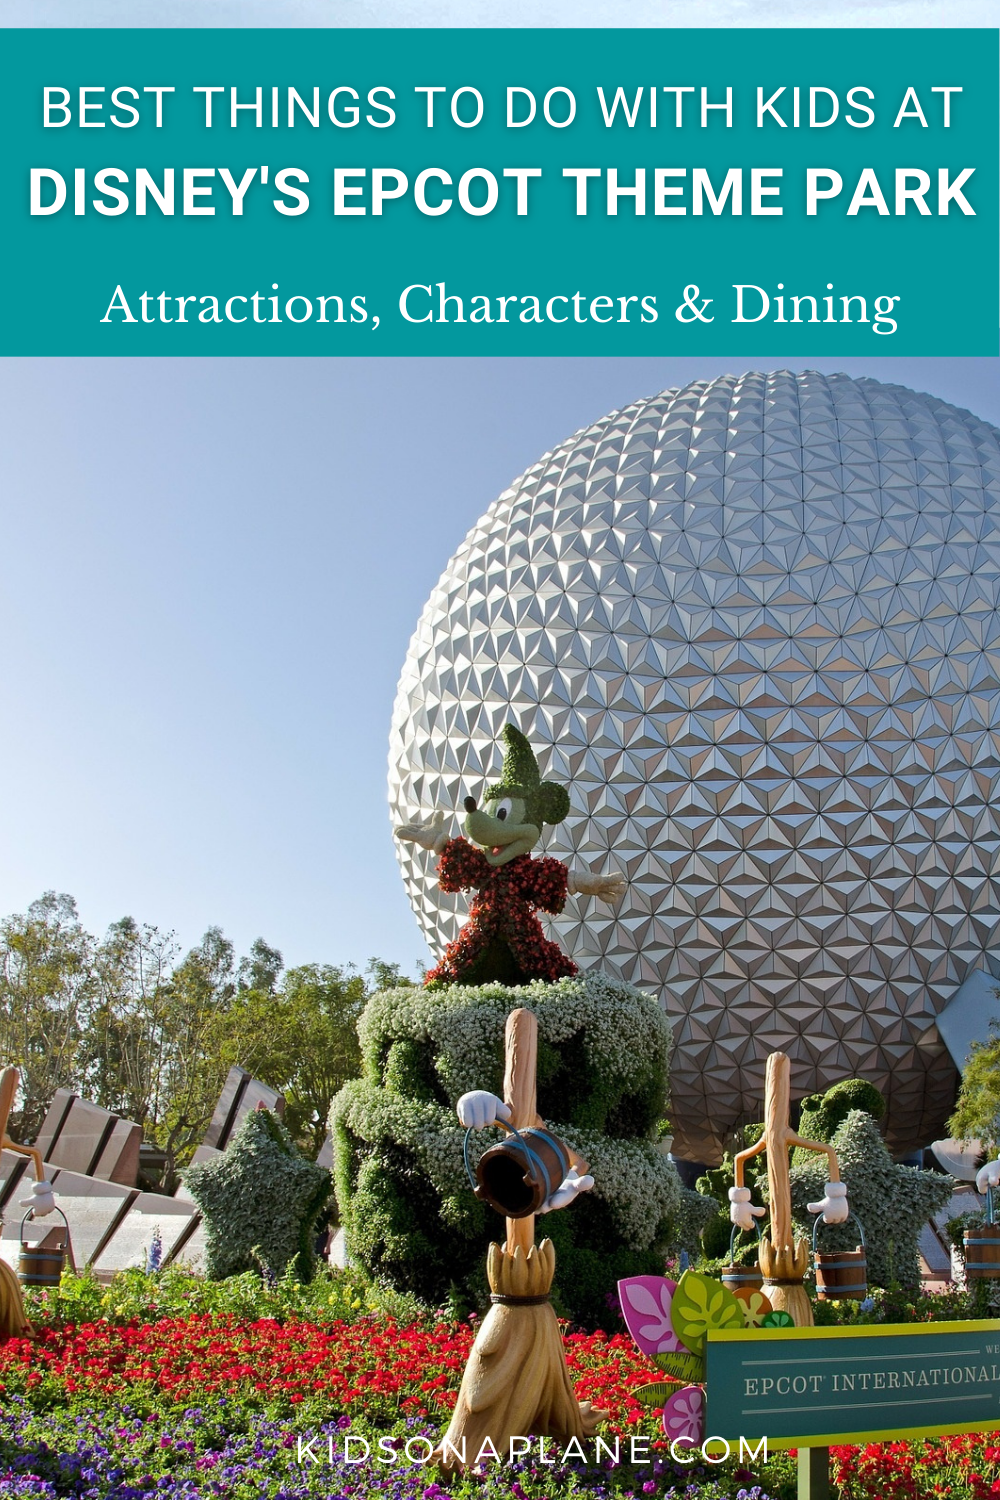 Best Things to Do with Kids at Disney World EPCOT - Rides Shows Characters and Dining